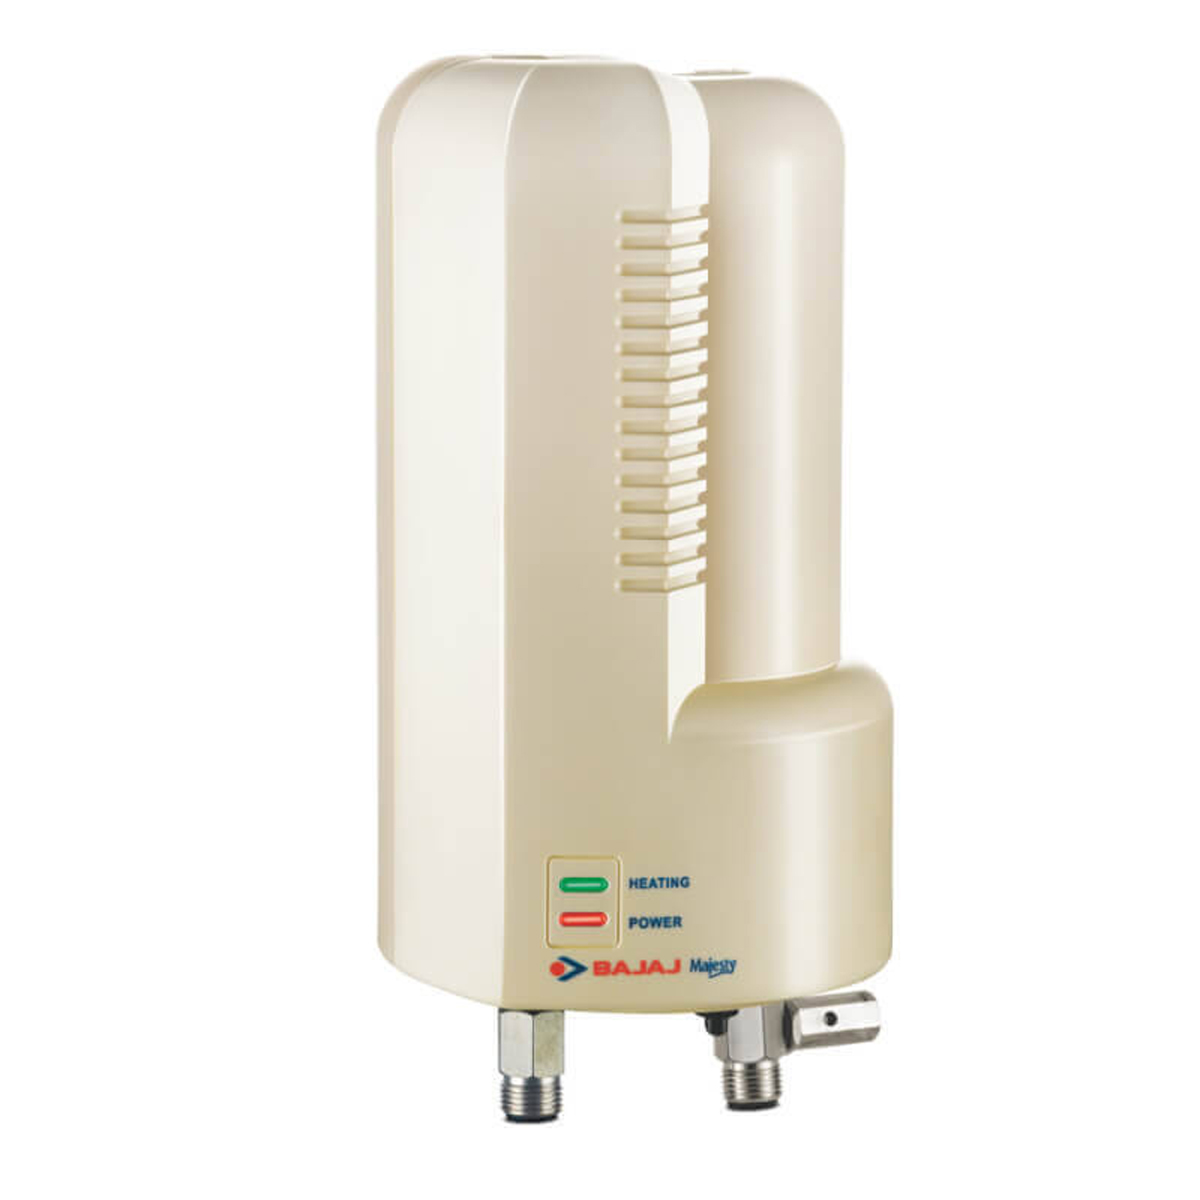 Bajaj Magesty 1 Litre 3kw Geyser Geysers In Ltr Vardhman Shop How To Wire A Switch